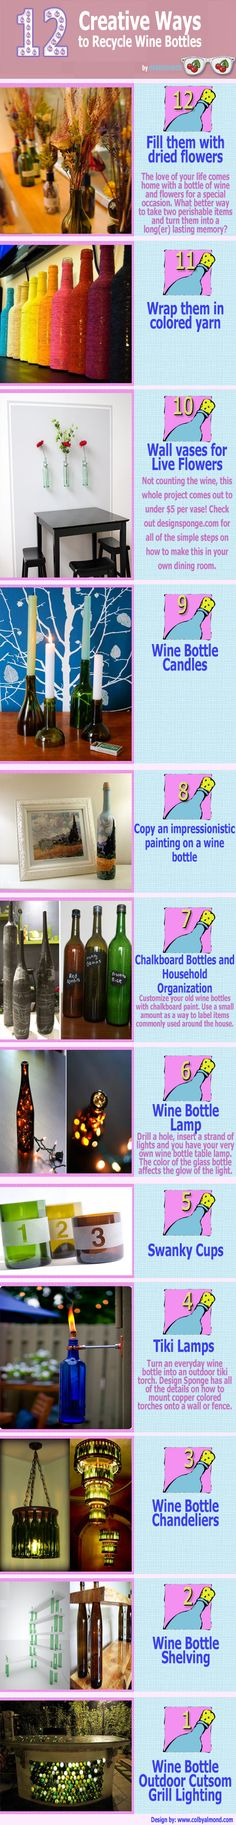 wine bottle crafts!